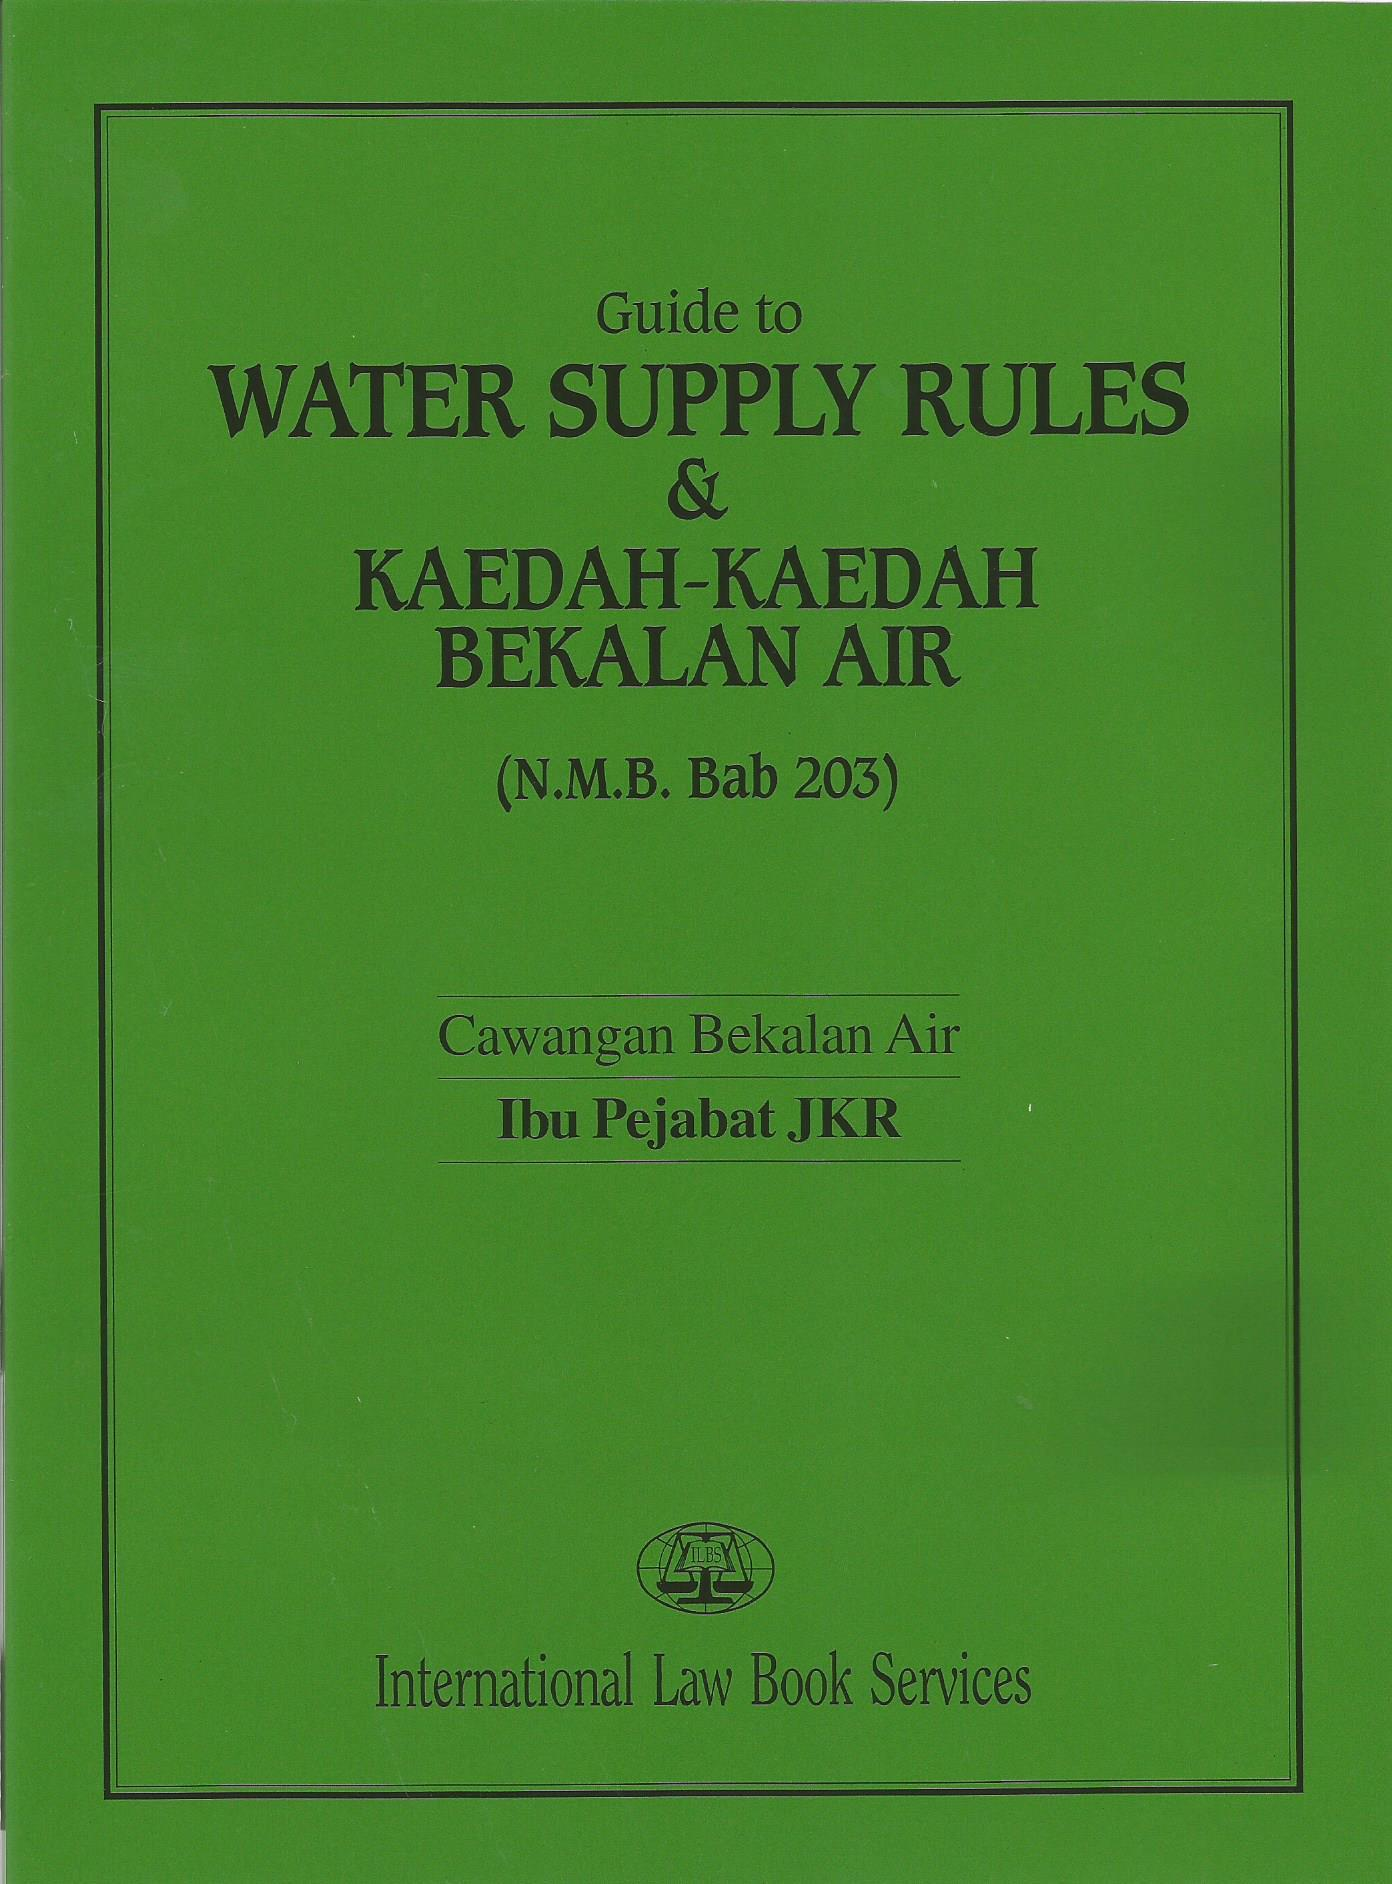 water supply rules rm20 0.30001.jpg